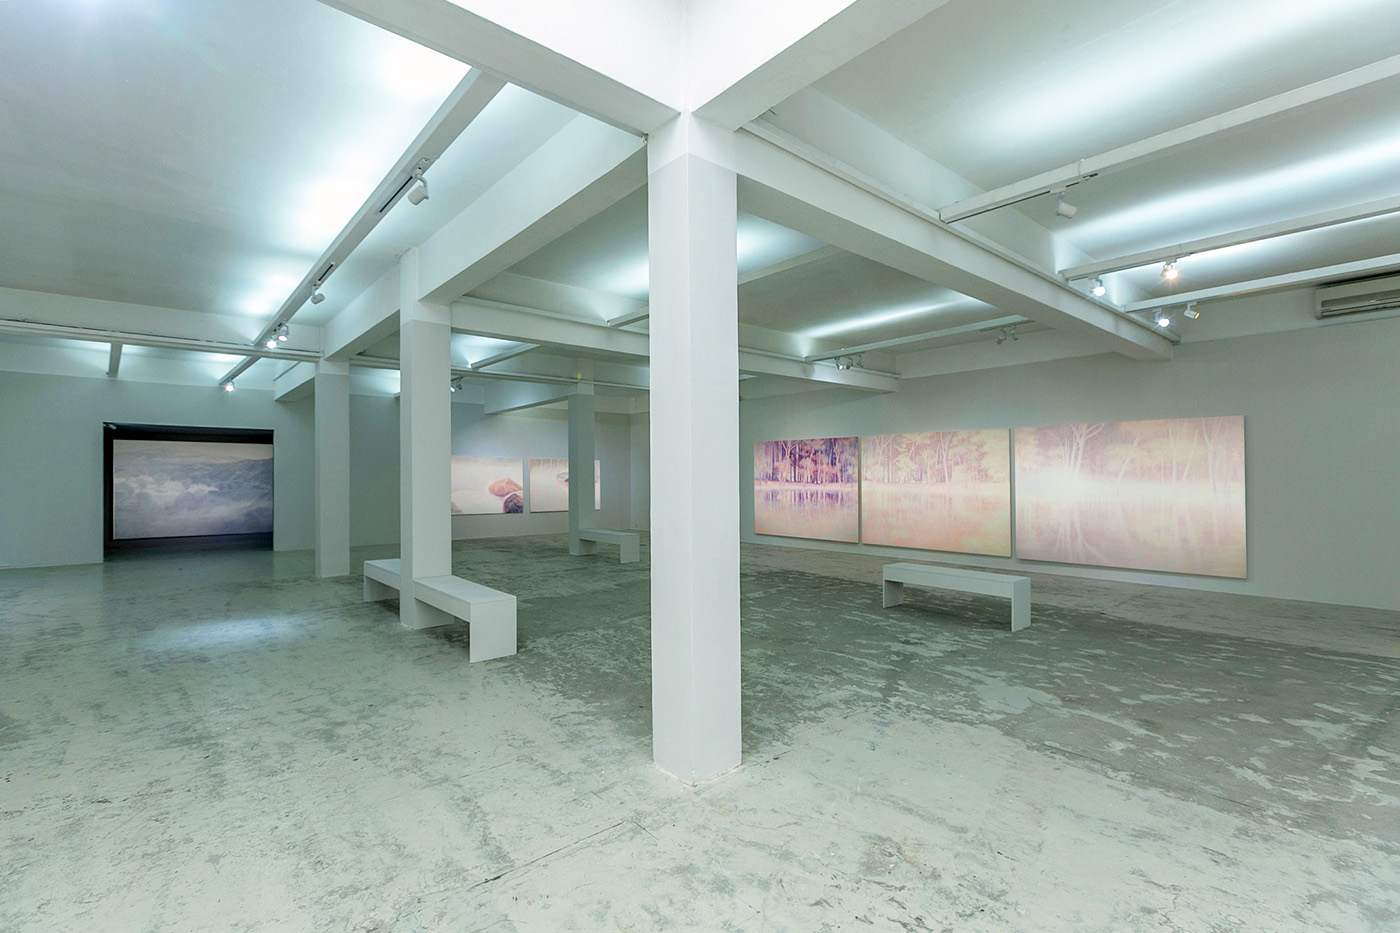 Daniele Genadry - Slow Light - Exhibition views, 2018